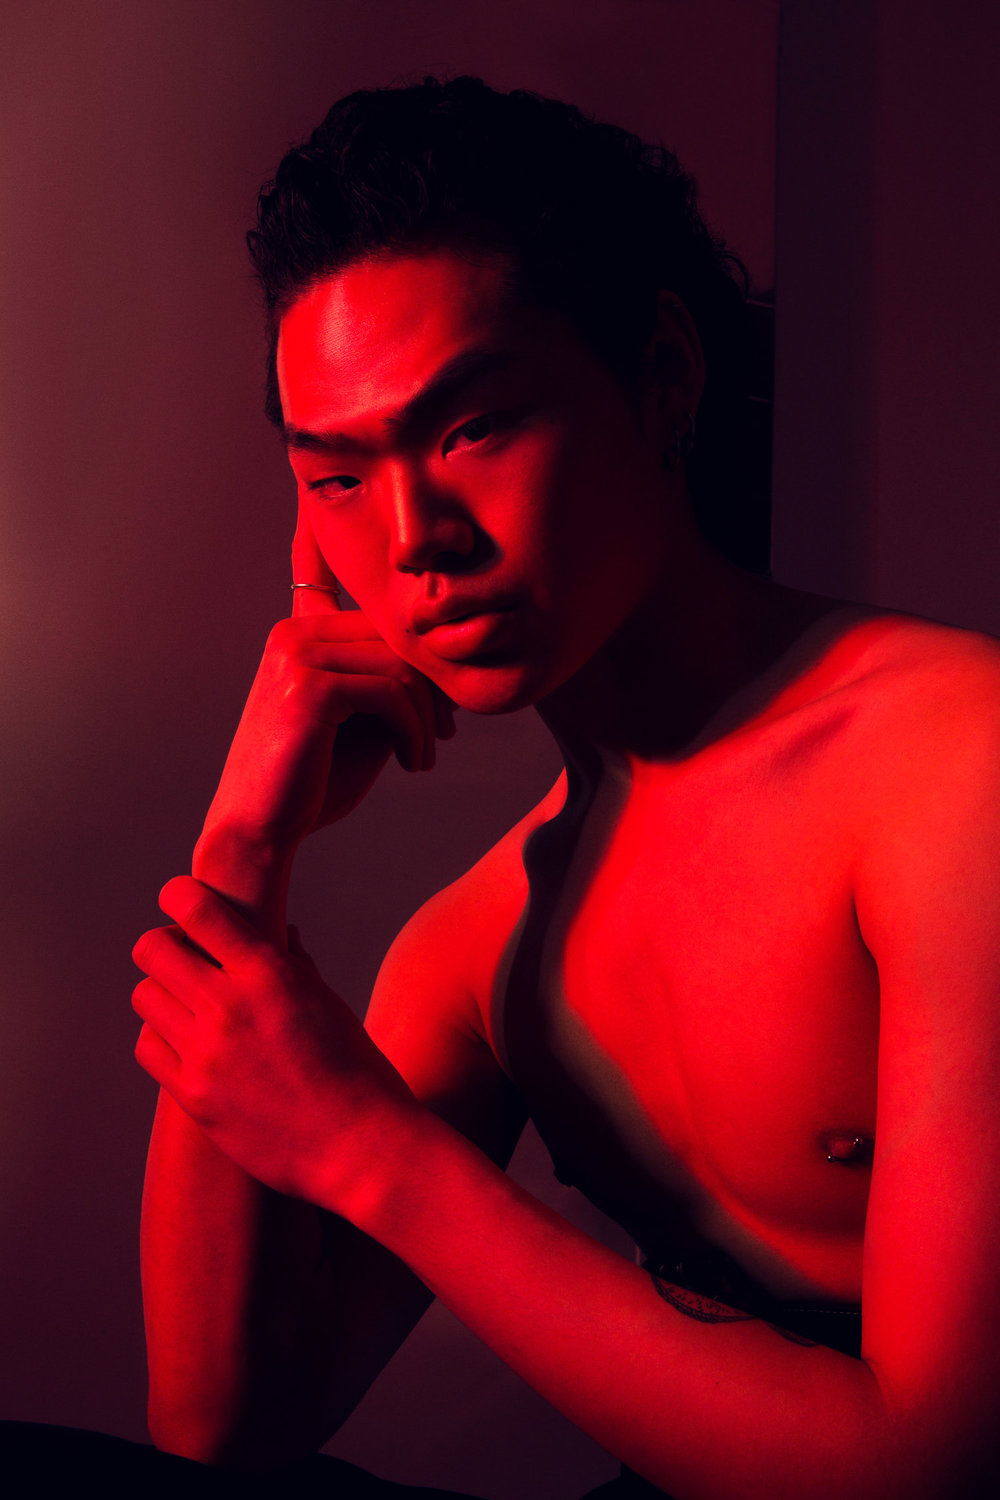 Red light closeup of asian male model.